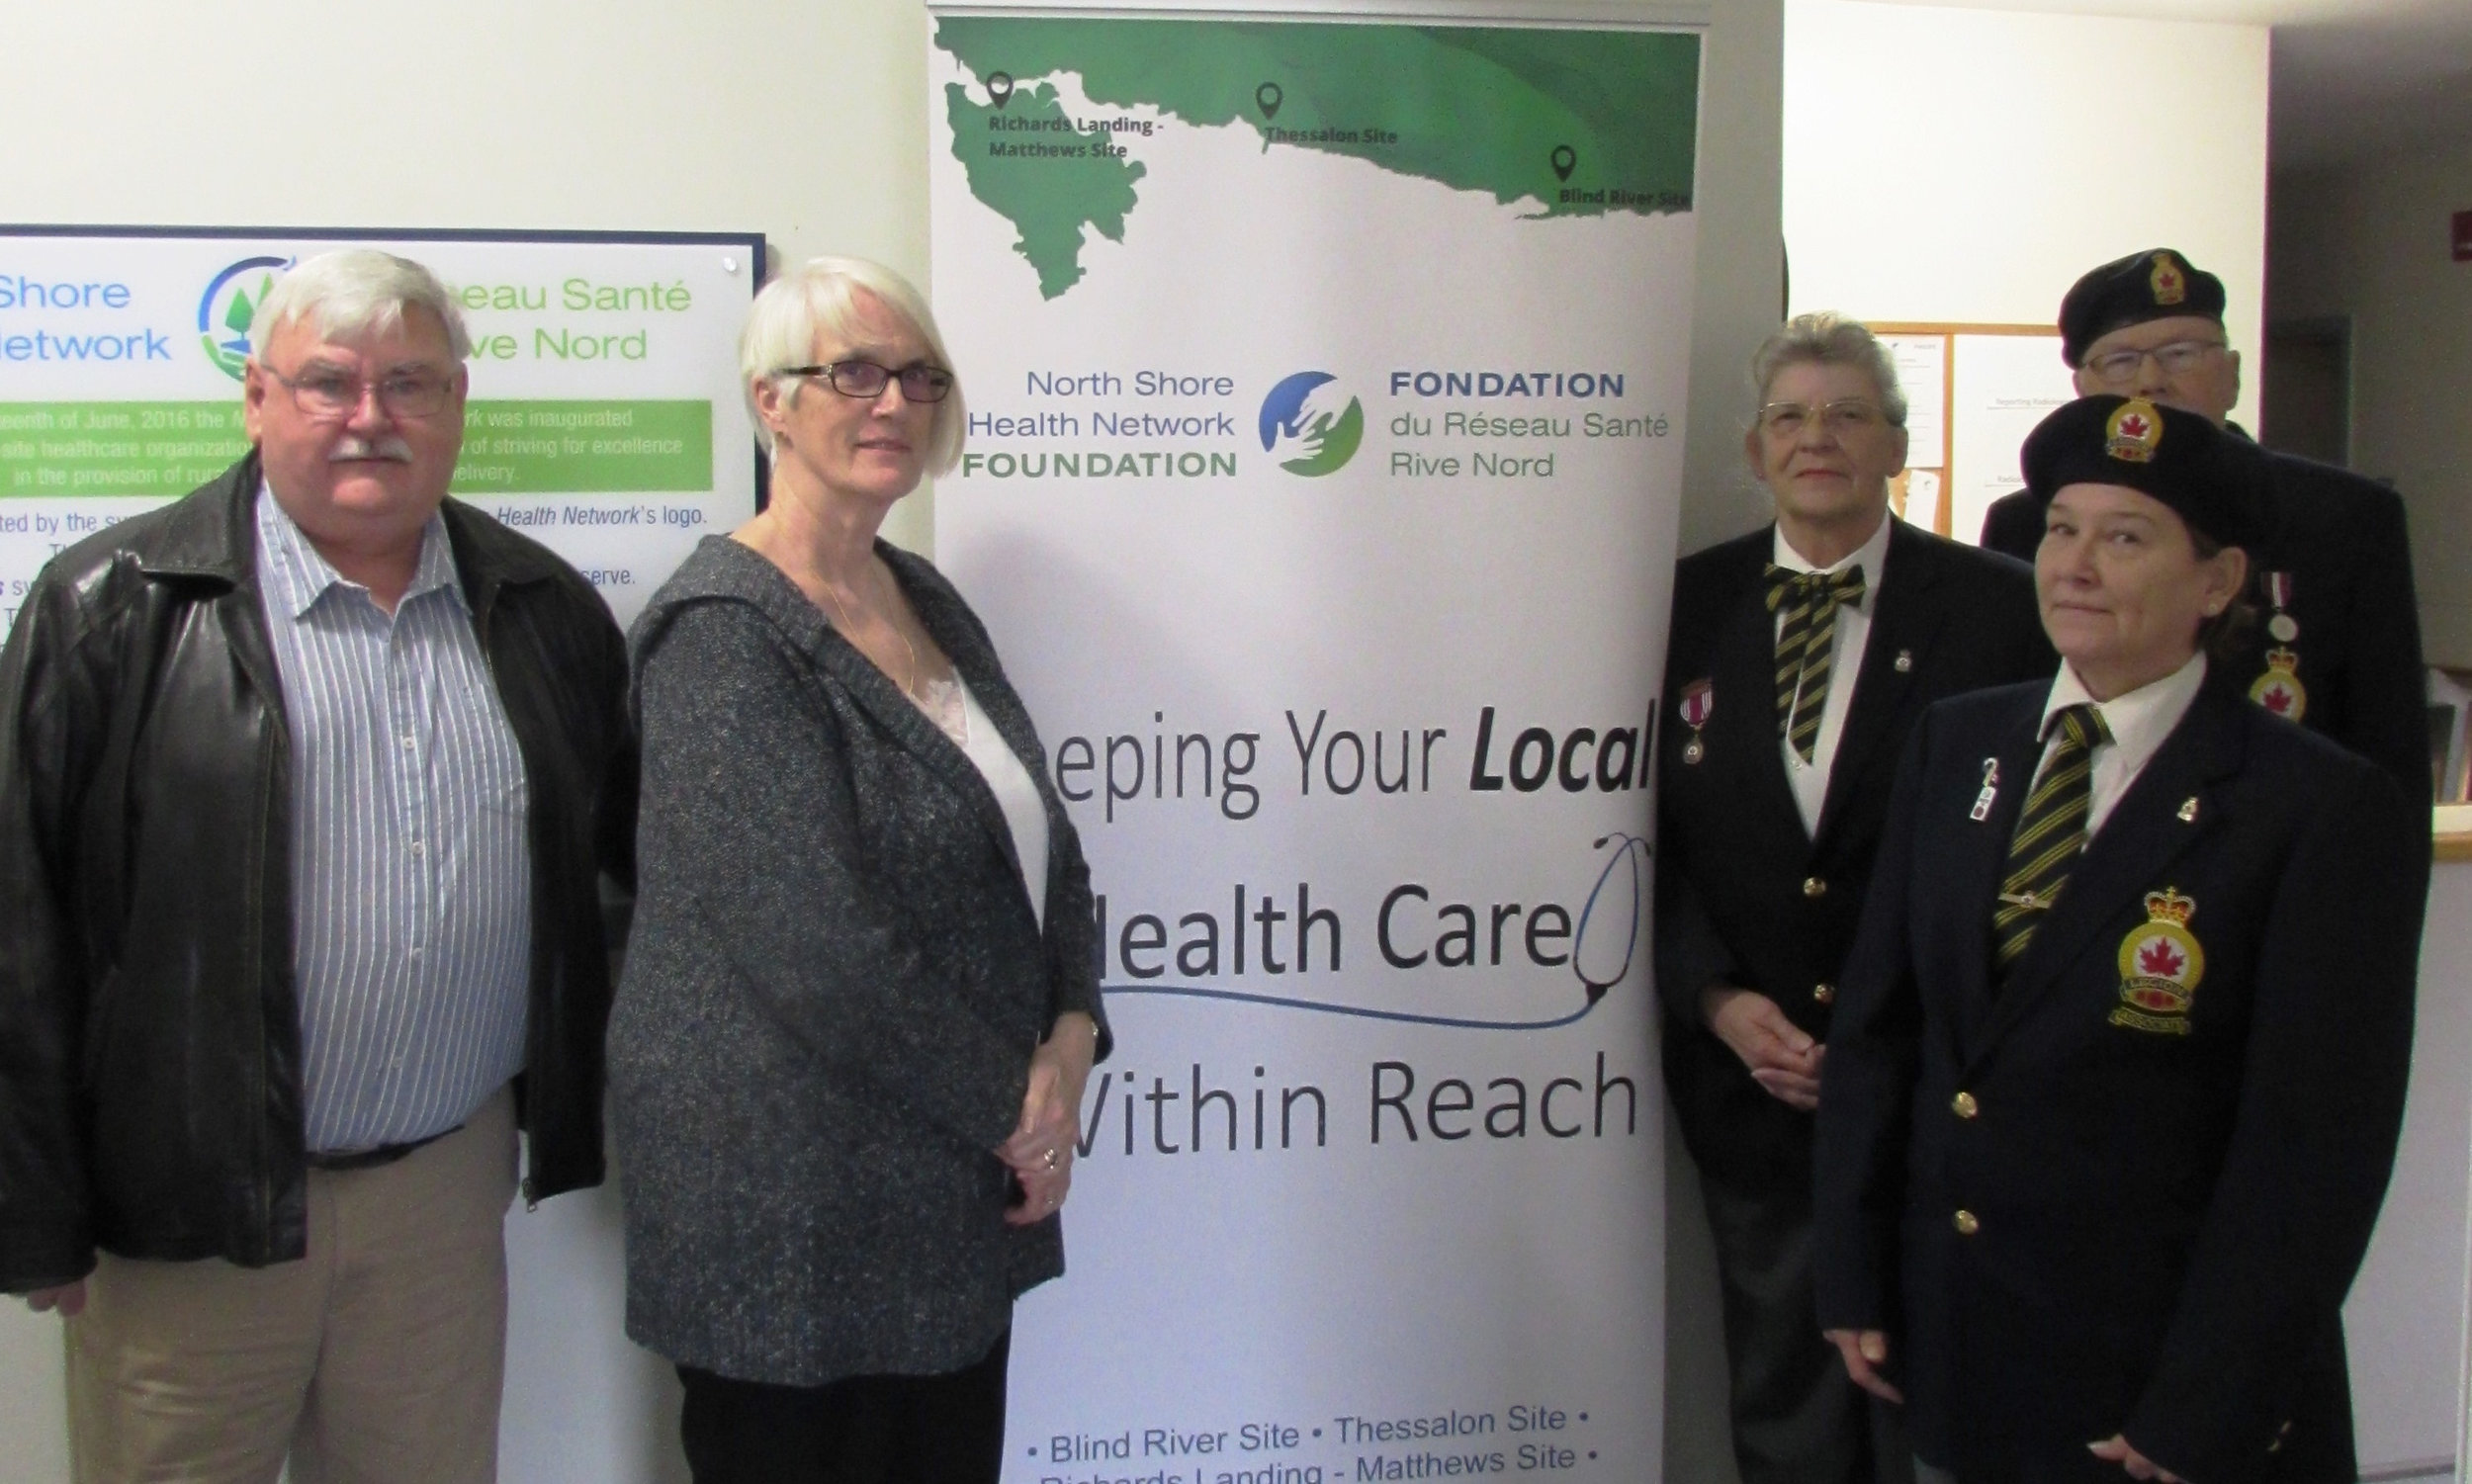 (Left to right) John Fogal (NSHNF Director); Sue Barlow (NSHNF Vice Chair); Sandra Stevens (President – Ladies Auxiliary); Hugh Hamilton (Charitable Foundation Chairperson); Anne Allaire (Branch President).